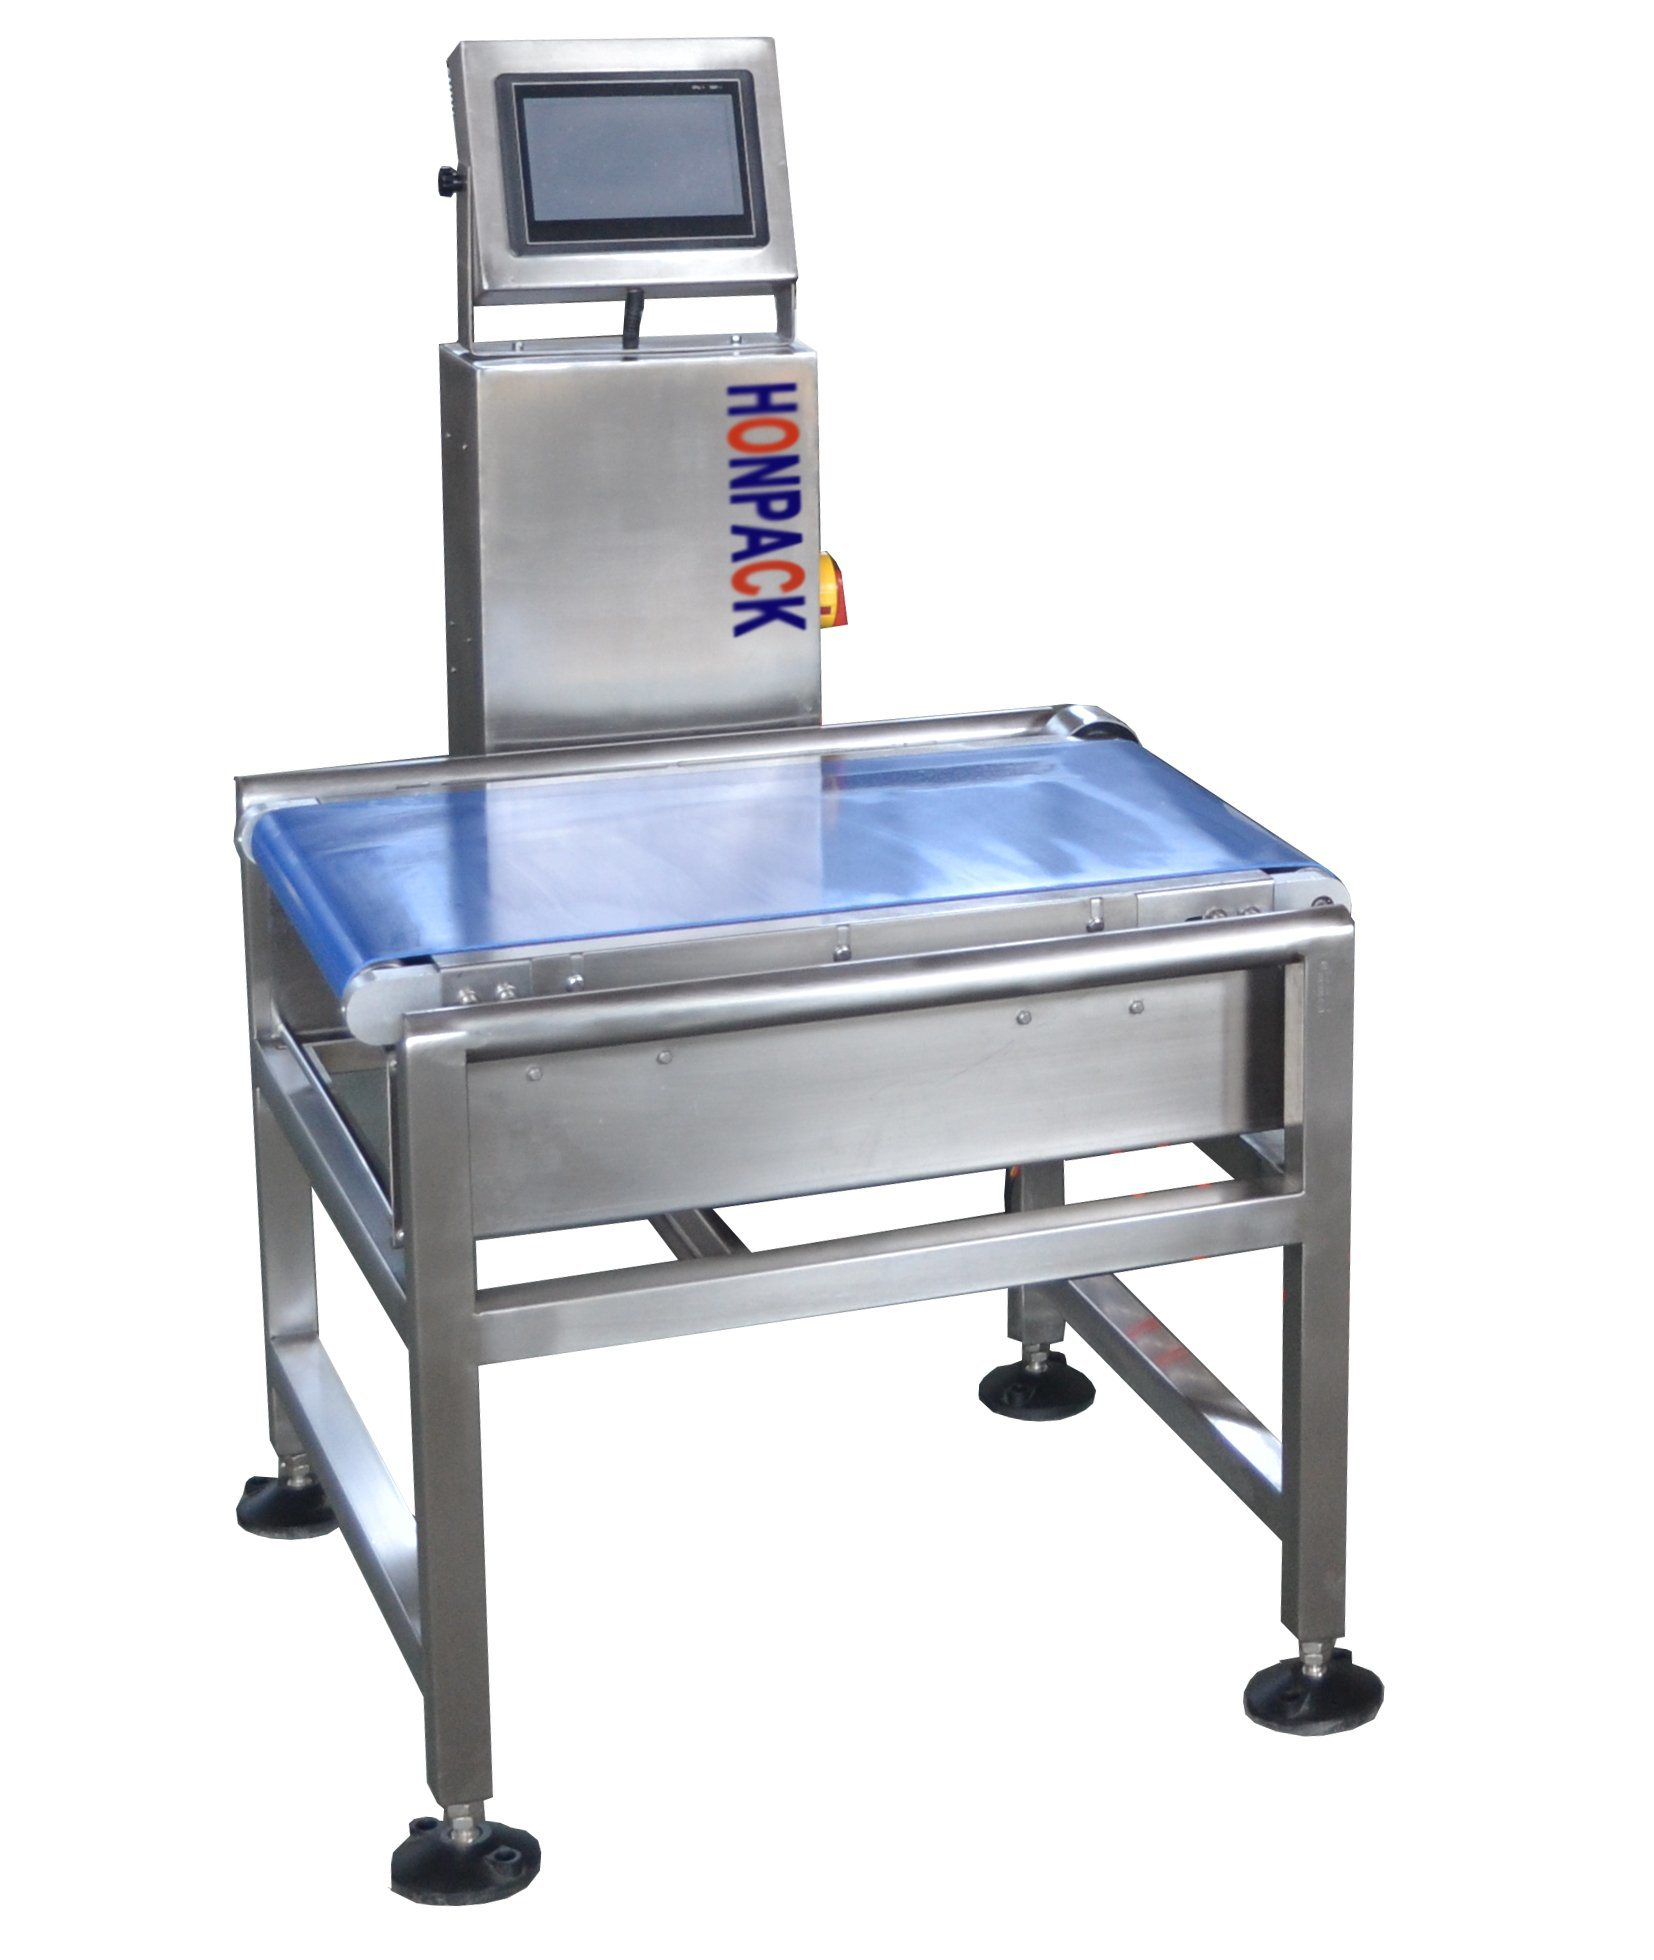 Hcw7040 Online Checkweigher for Food